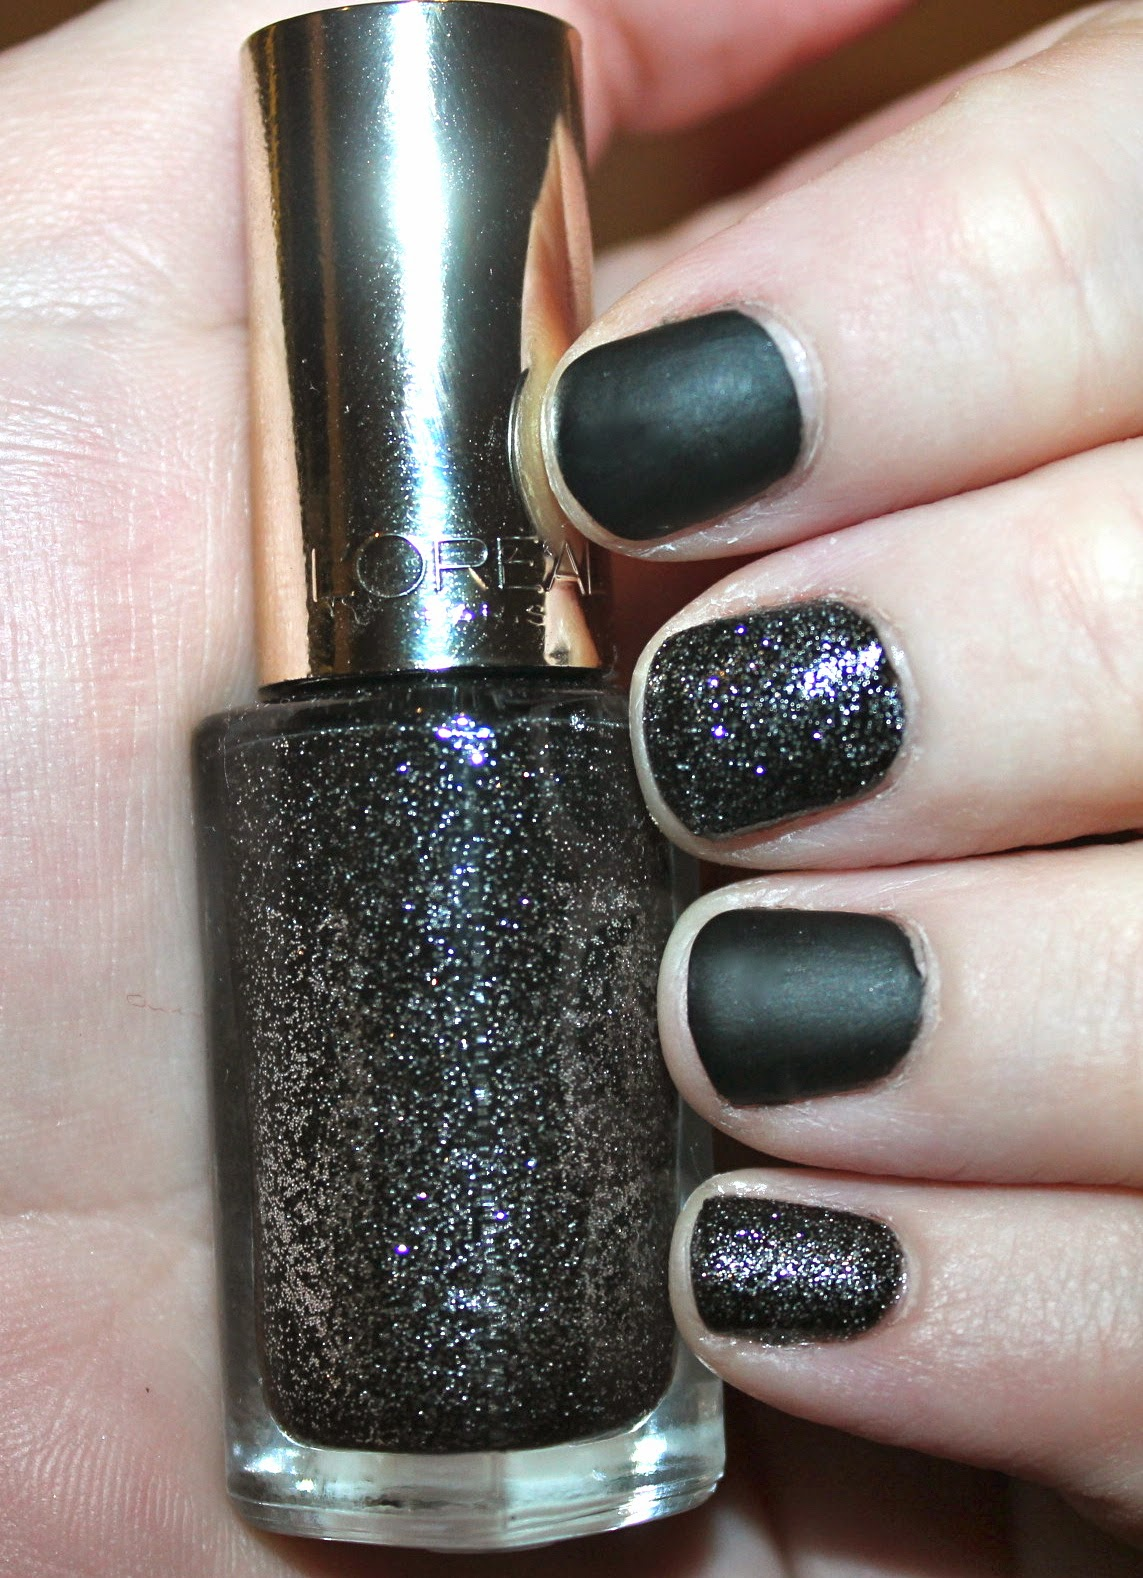 Manicure Monday: Black Leather & Sparkles